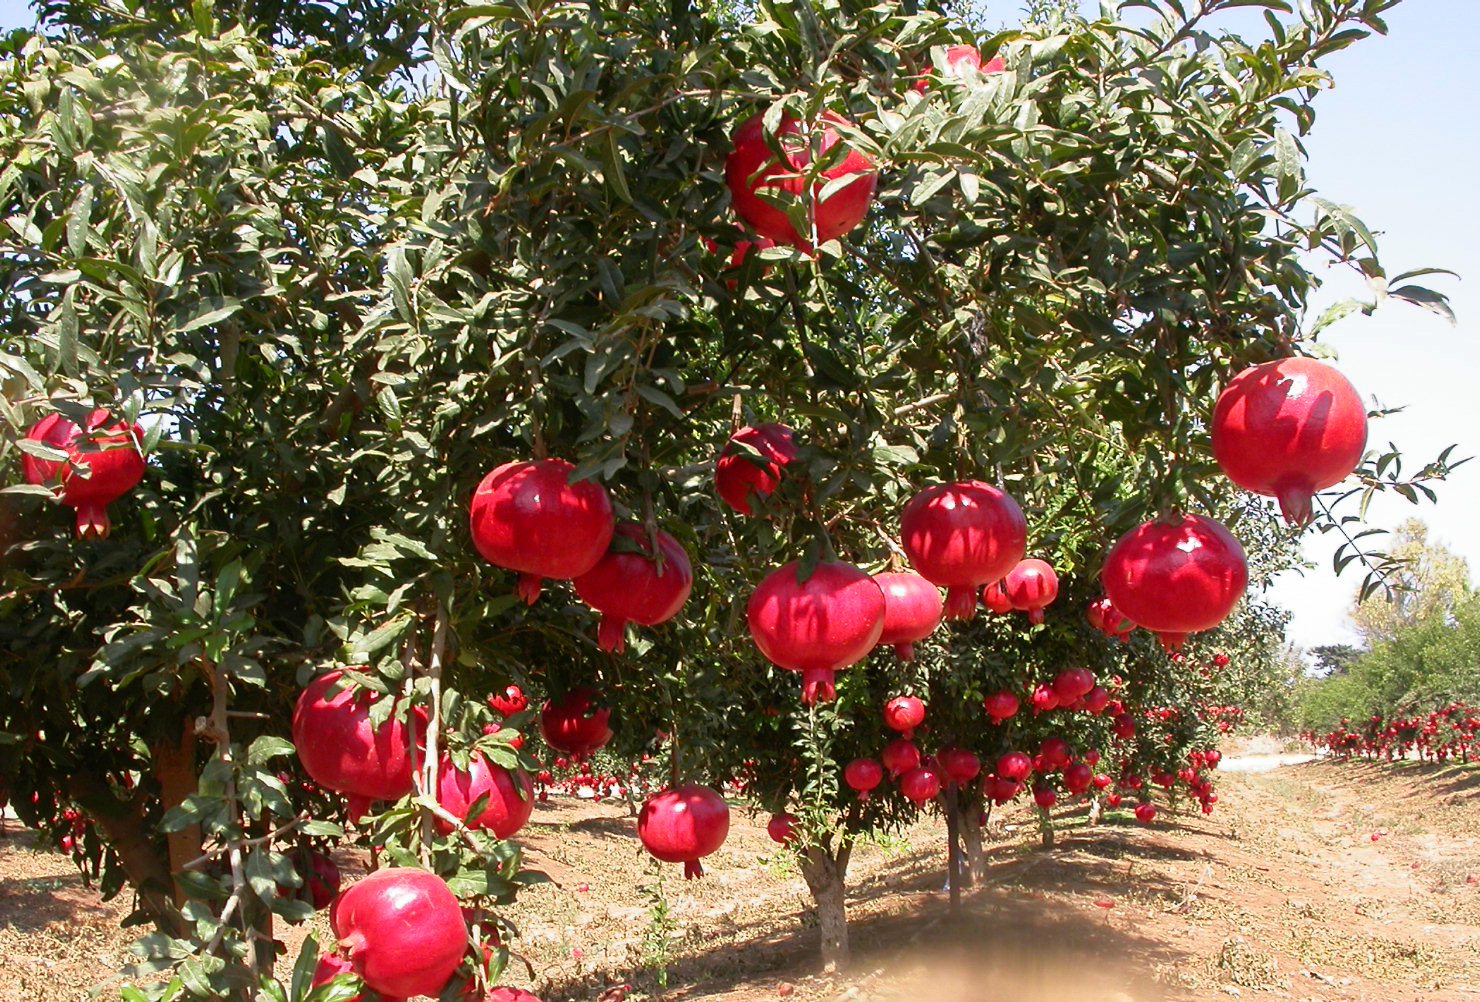 Indian Pomegranate Farms: Demystified